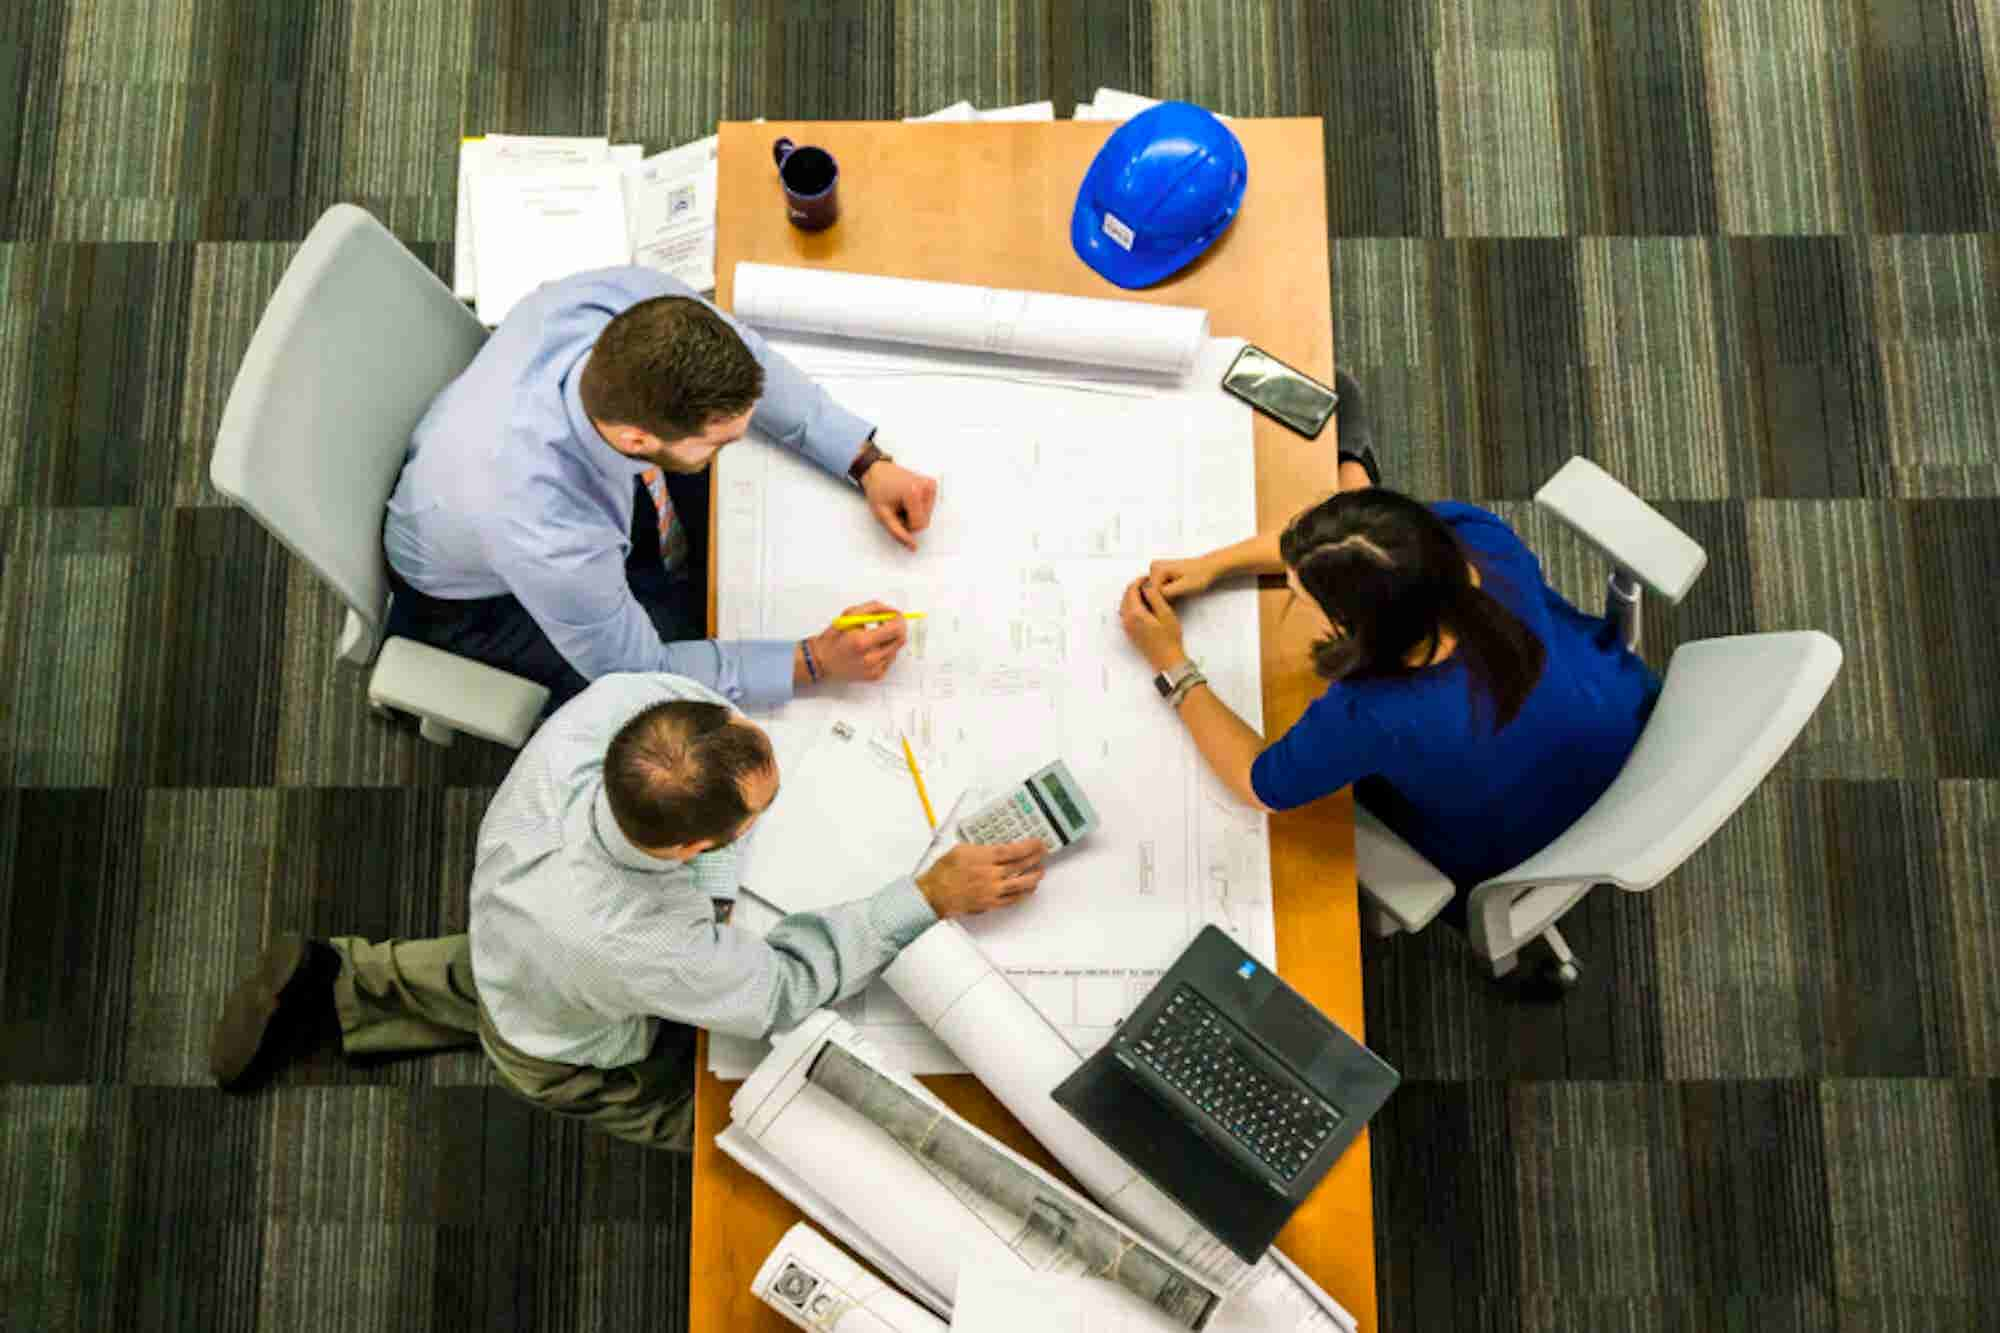 Launch a Project Management Career with This $45 'Lean Six Sigma' Education